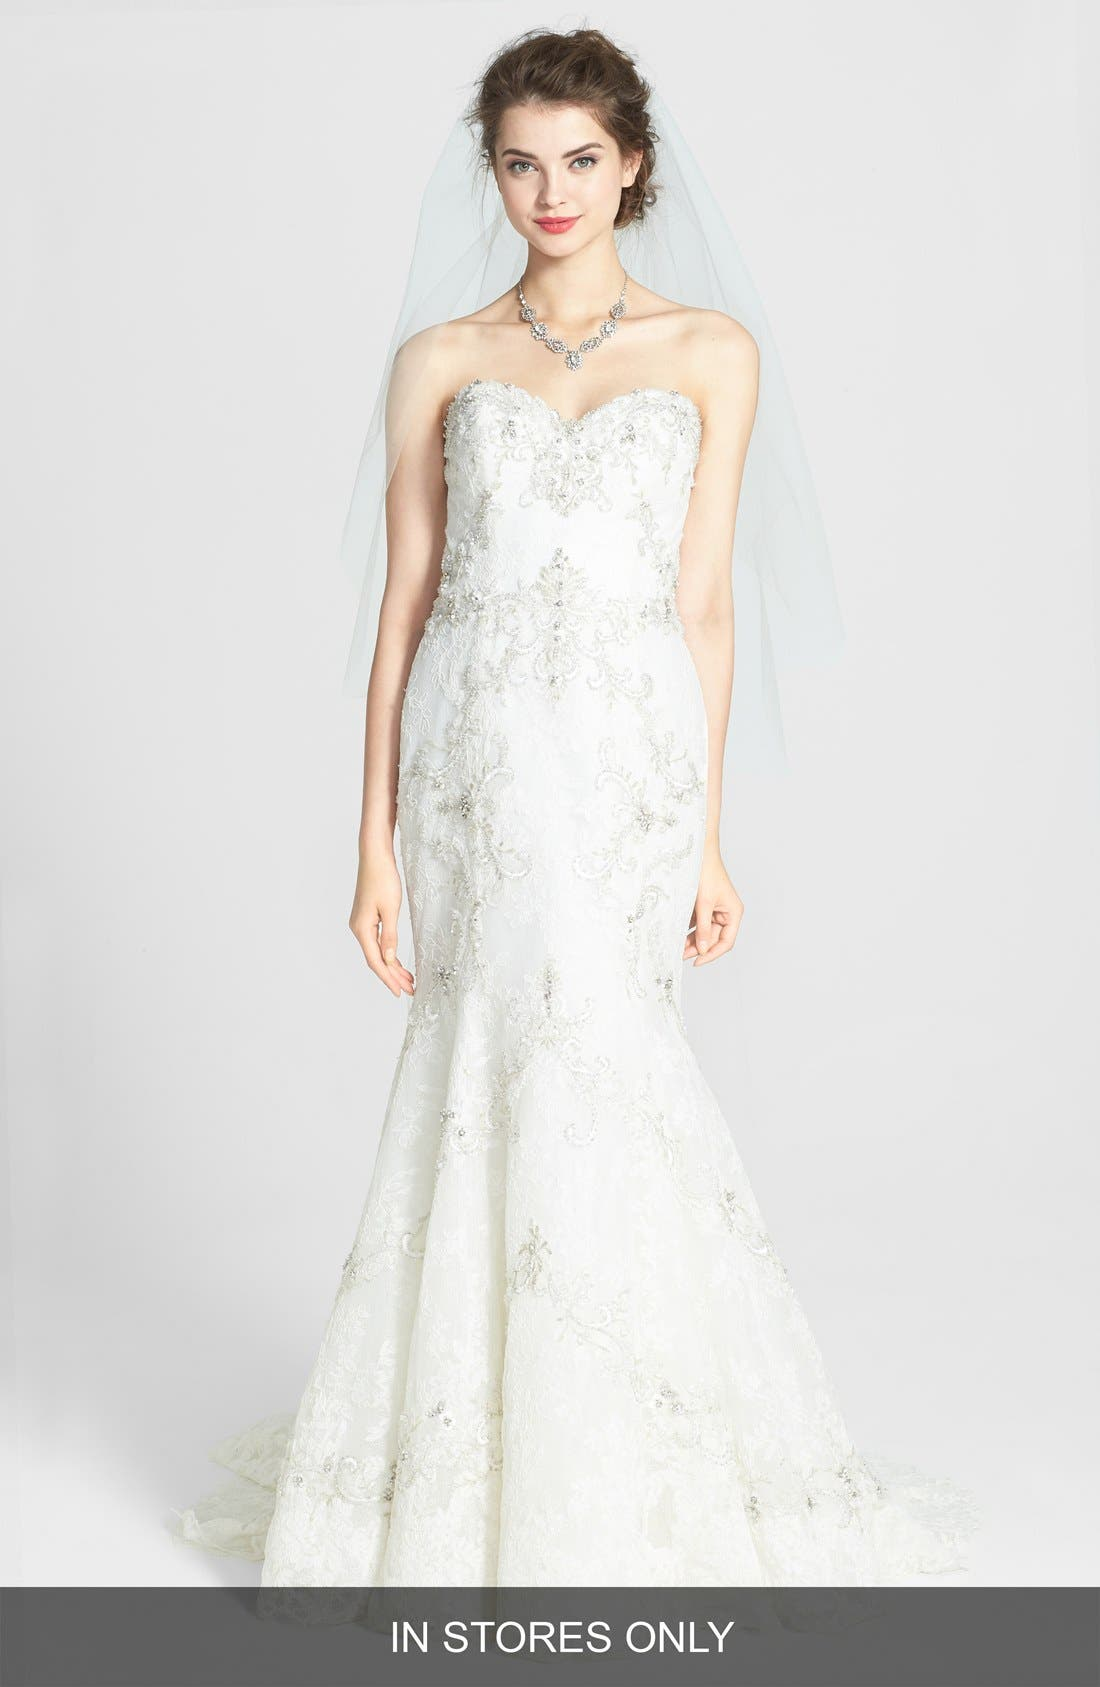 Main Image - Watters 'Olina' Beaded Lace Mermaid Dress (In Stores Only)